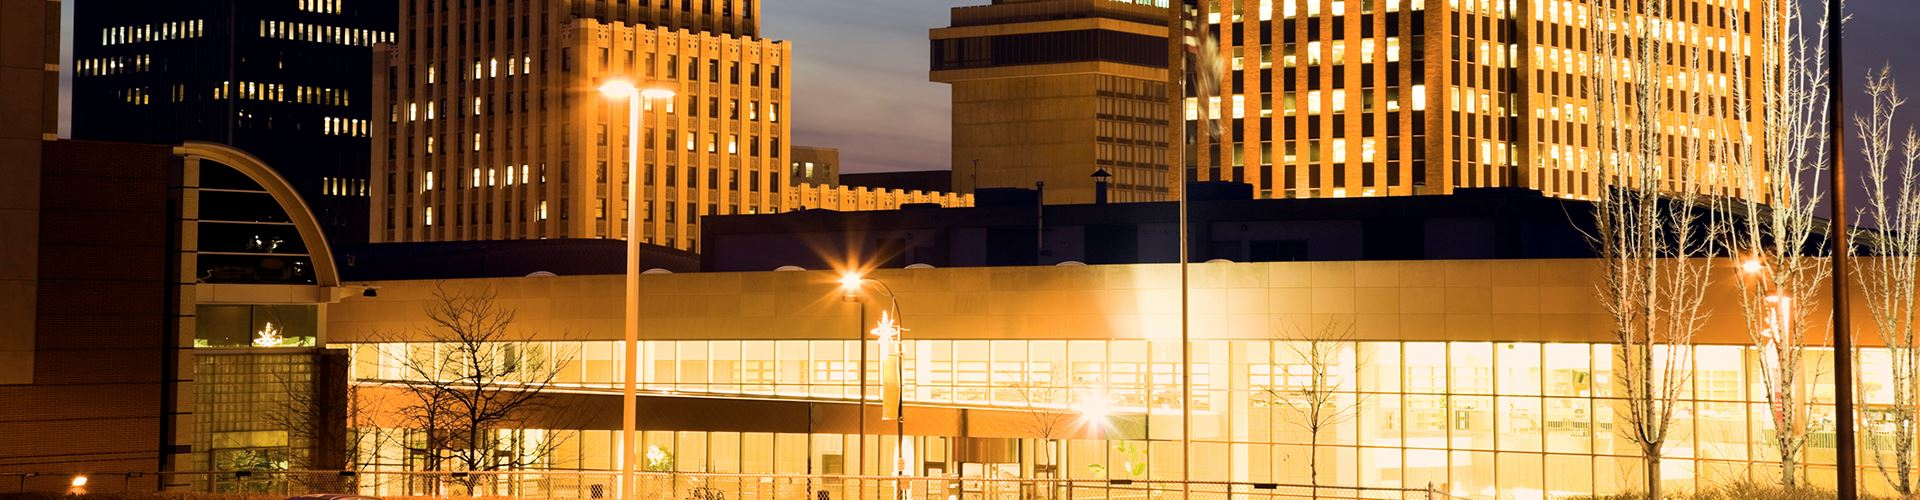 Evening view of buildings in downtown Akron, Ohio